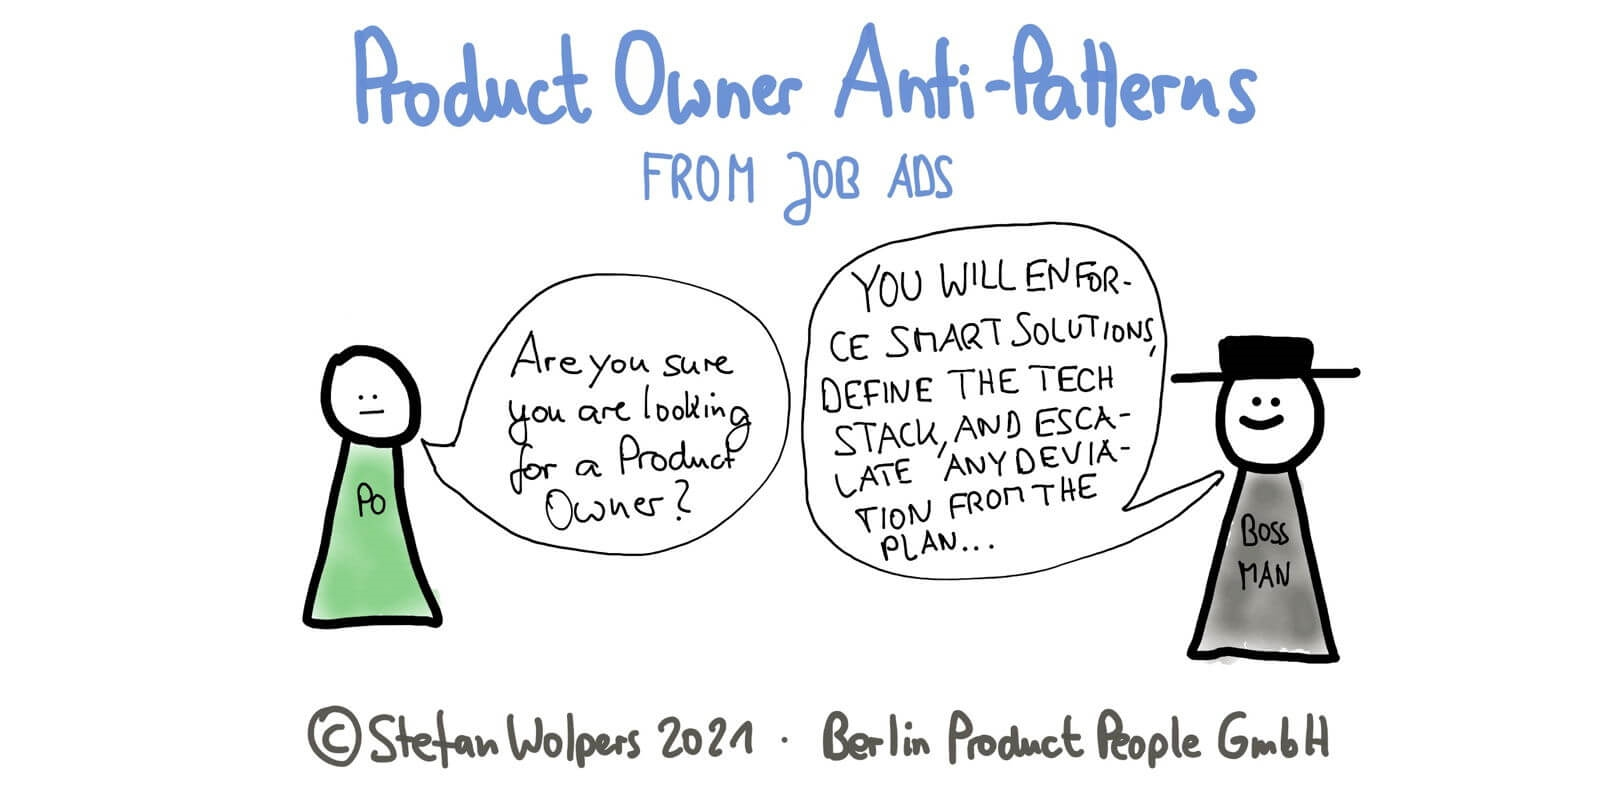 23 Product Owner Anti-Patterns from Job Ads: The Snitch, the Whip, the Bookkeeper, the Six Sigma Black Belt and #x2122; — Age-of-Product.com